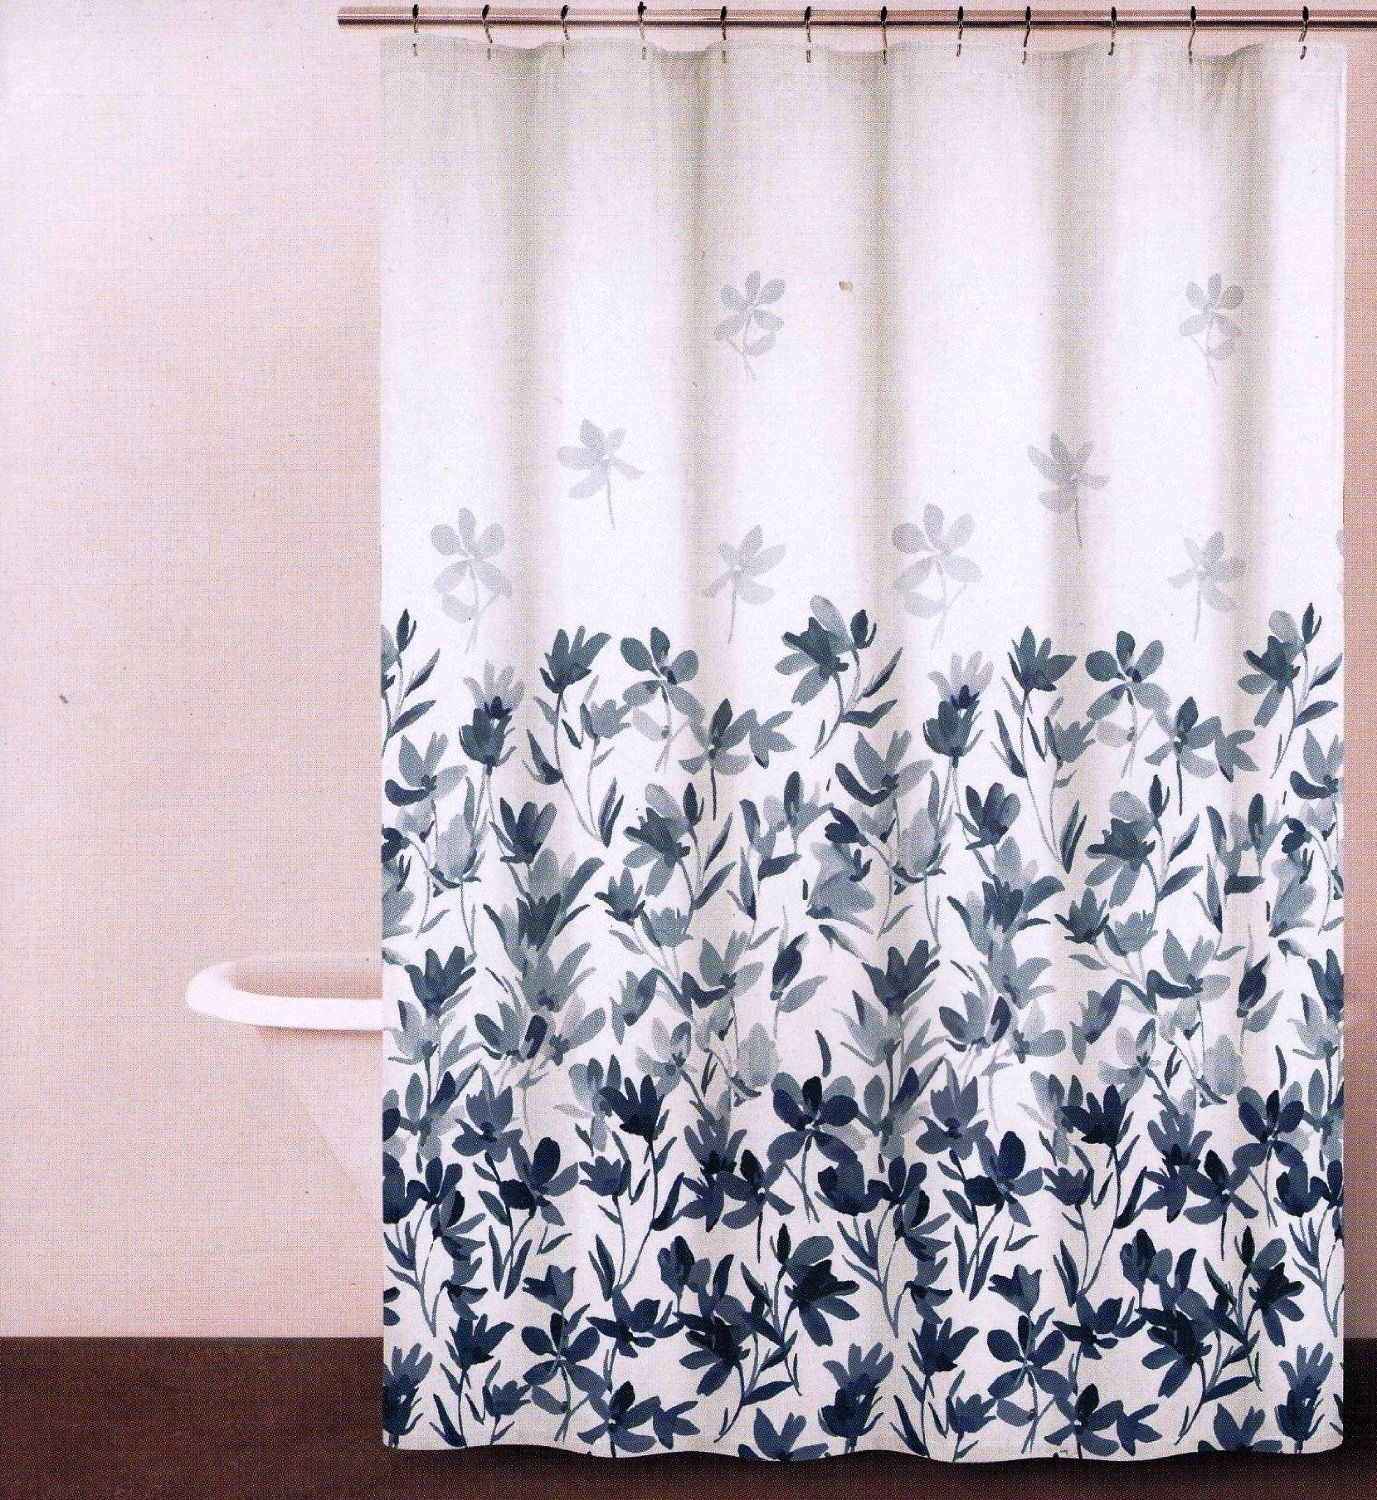 Dkny Bathroom Accessories Amazoncom Dkny Garden Splash Periwinkle Blue White Floral